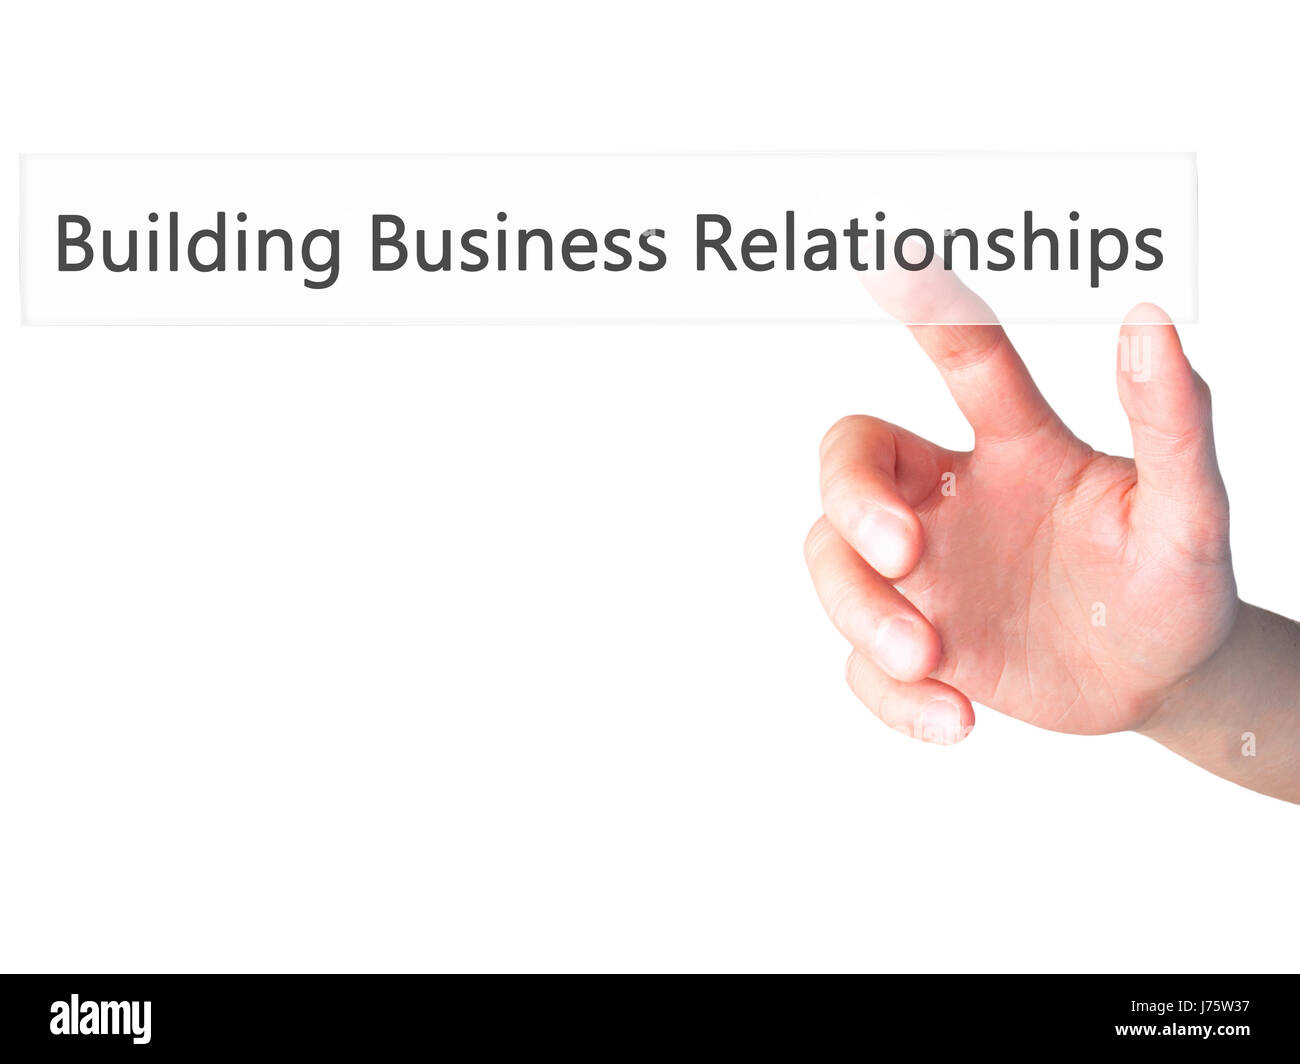 Building Business Relationships - Hand pressing a button on blurred background concept . Business, technology, internet - Stock Image